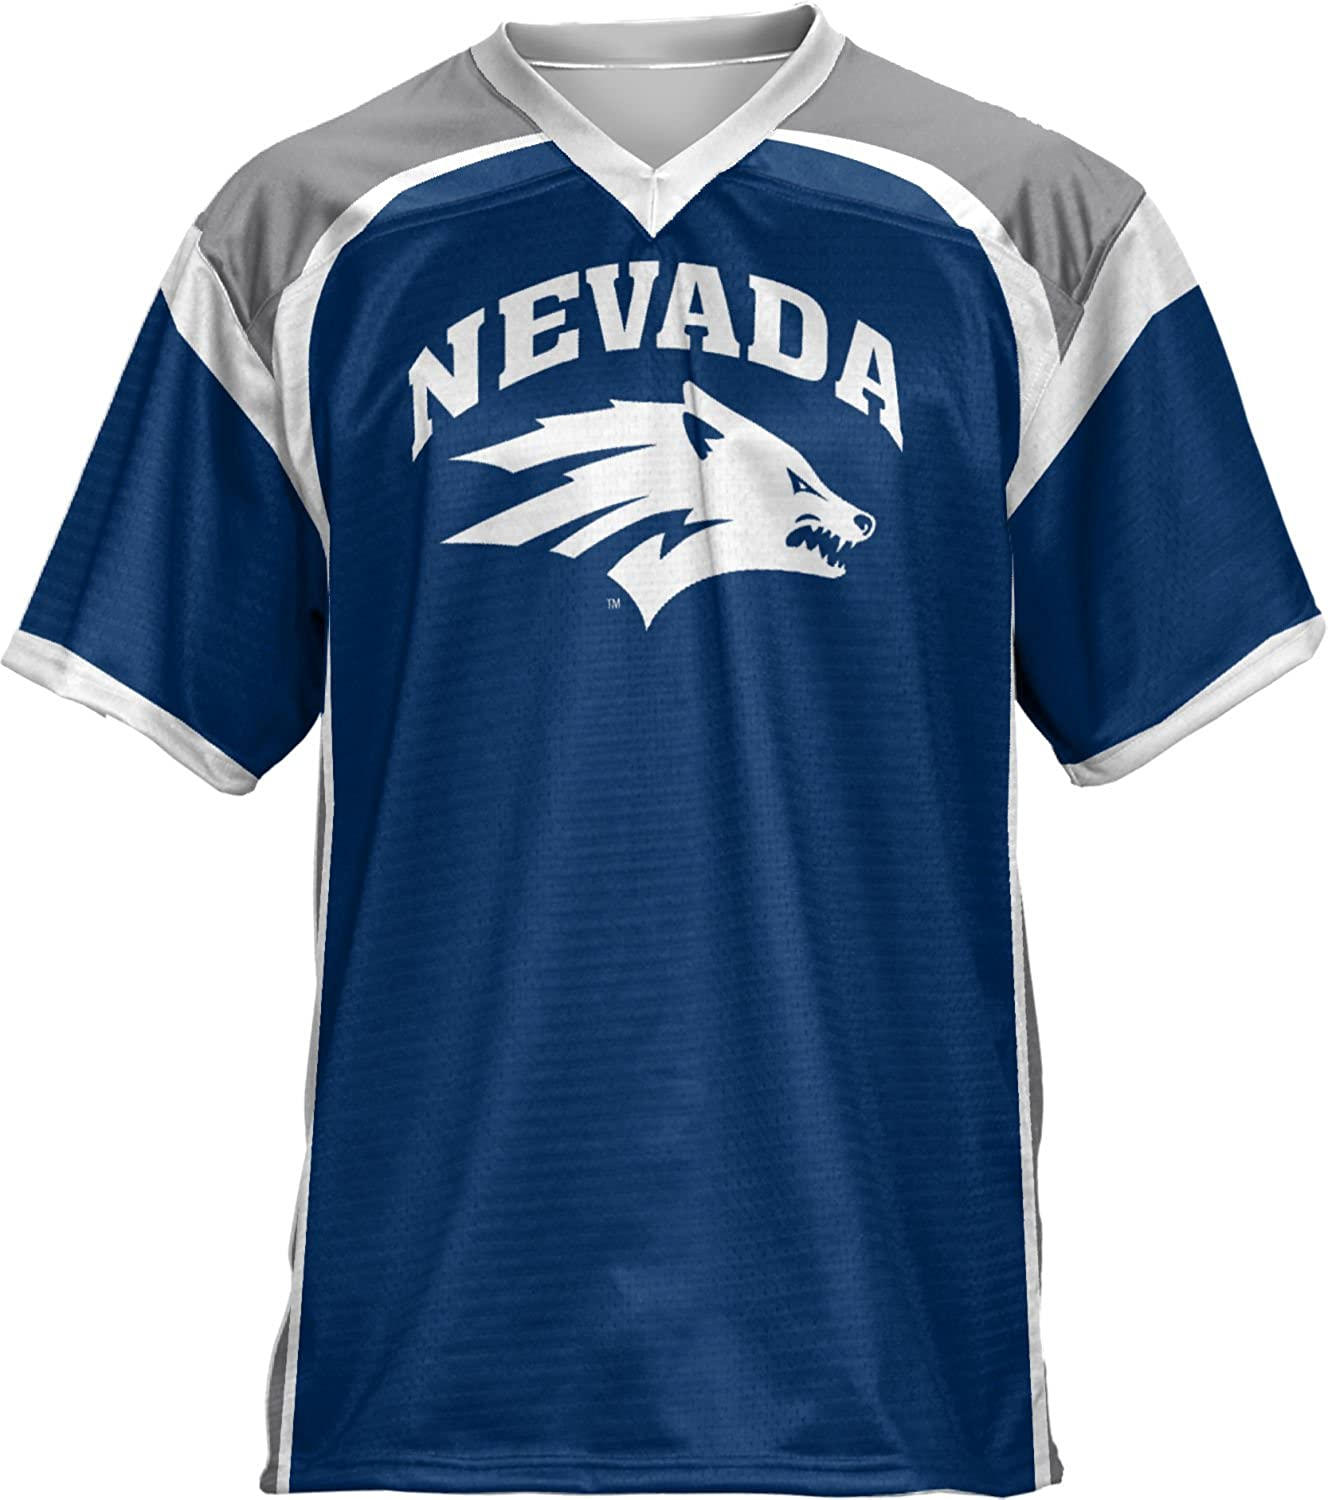 ProSphere University Max 86% OFF of Nevada Our shop OFFers the best service Boys' Jersey Football Zone Red